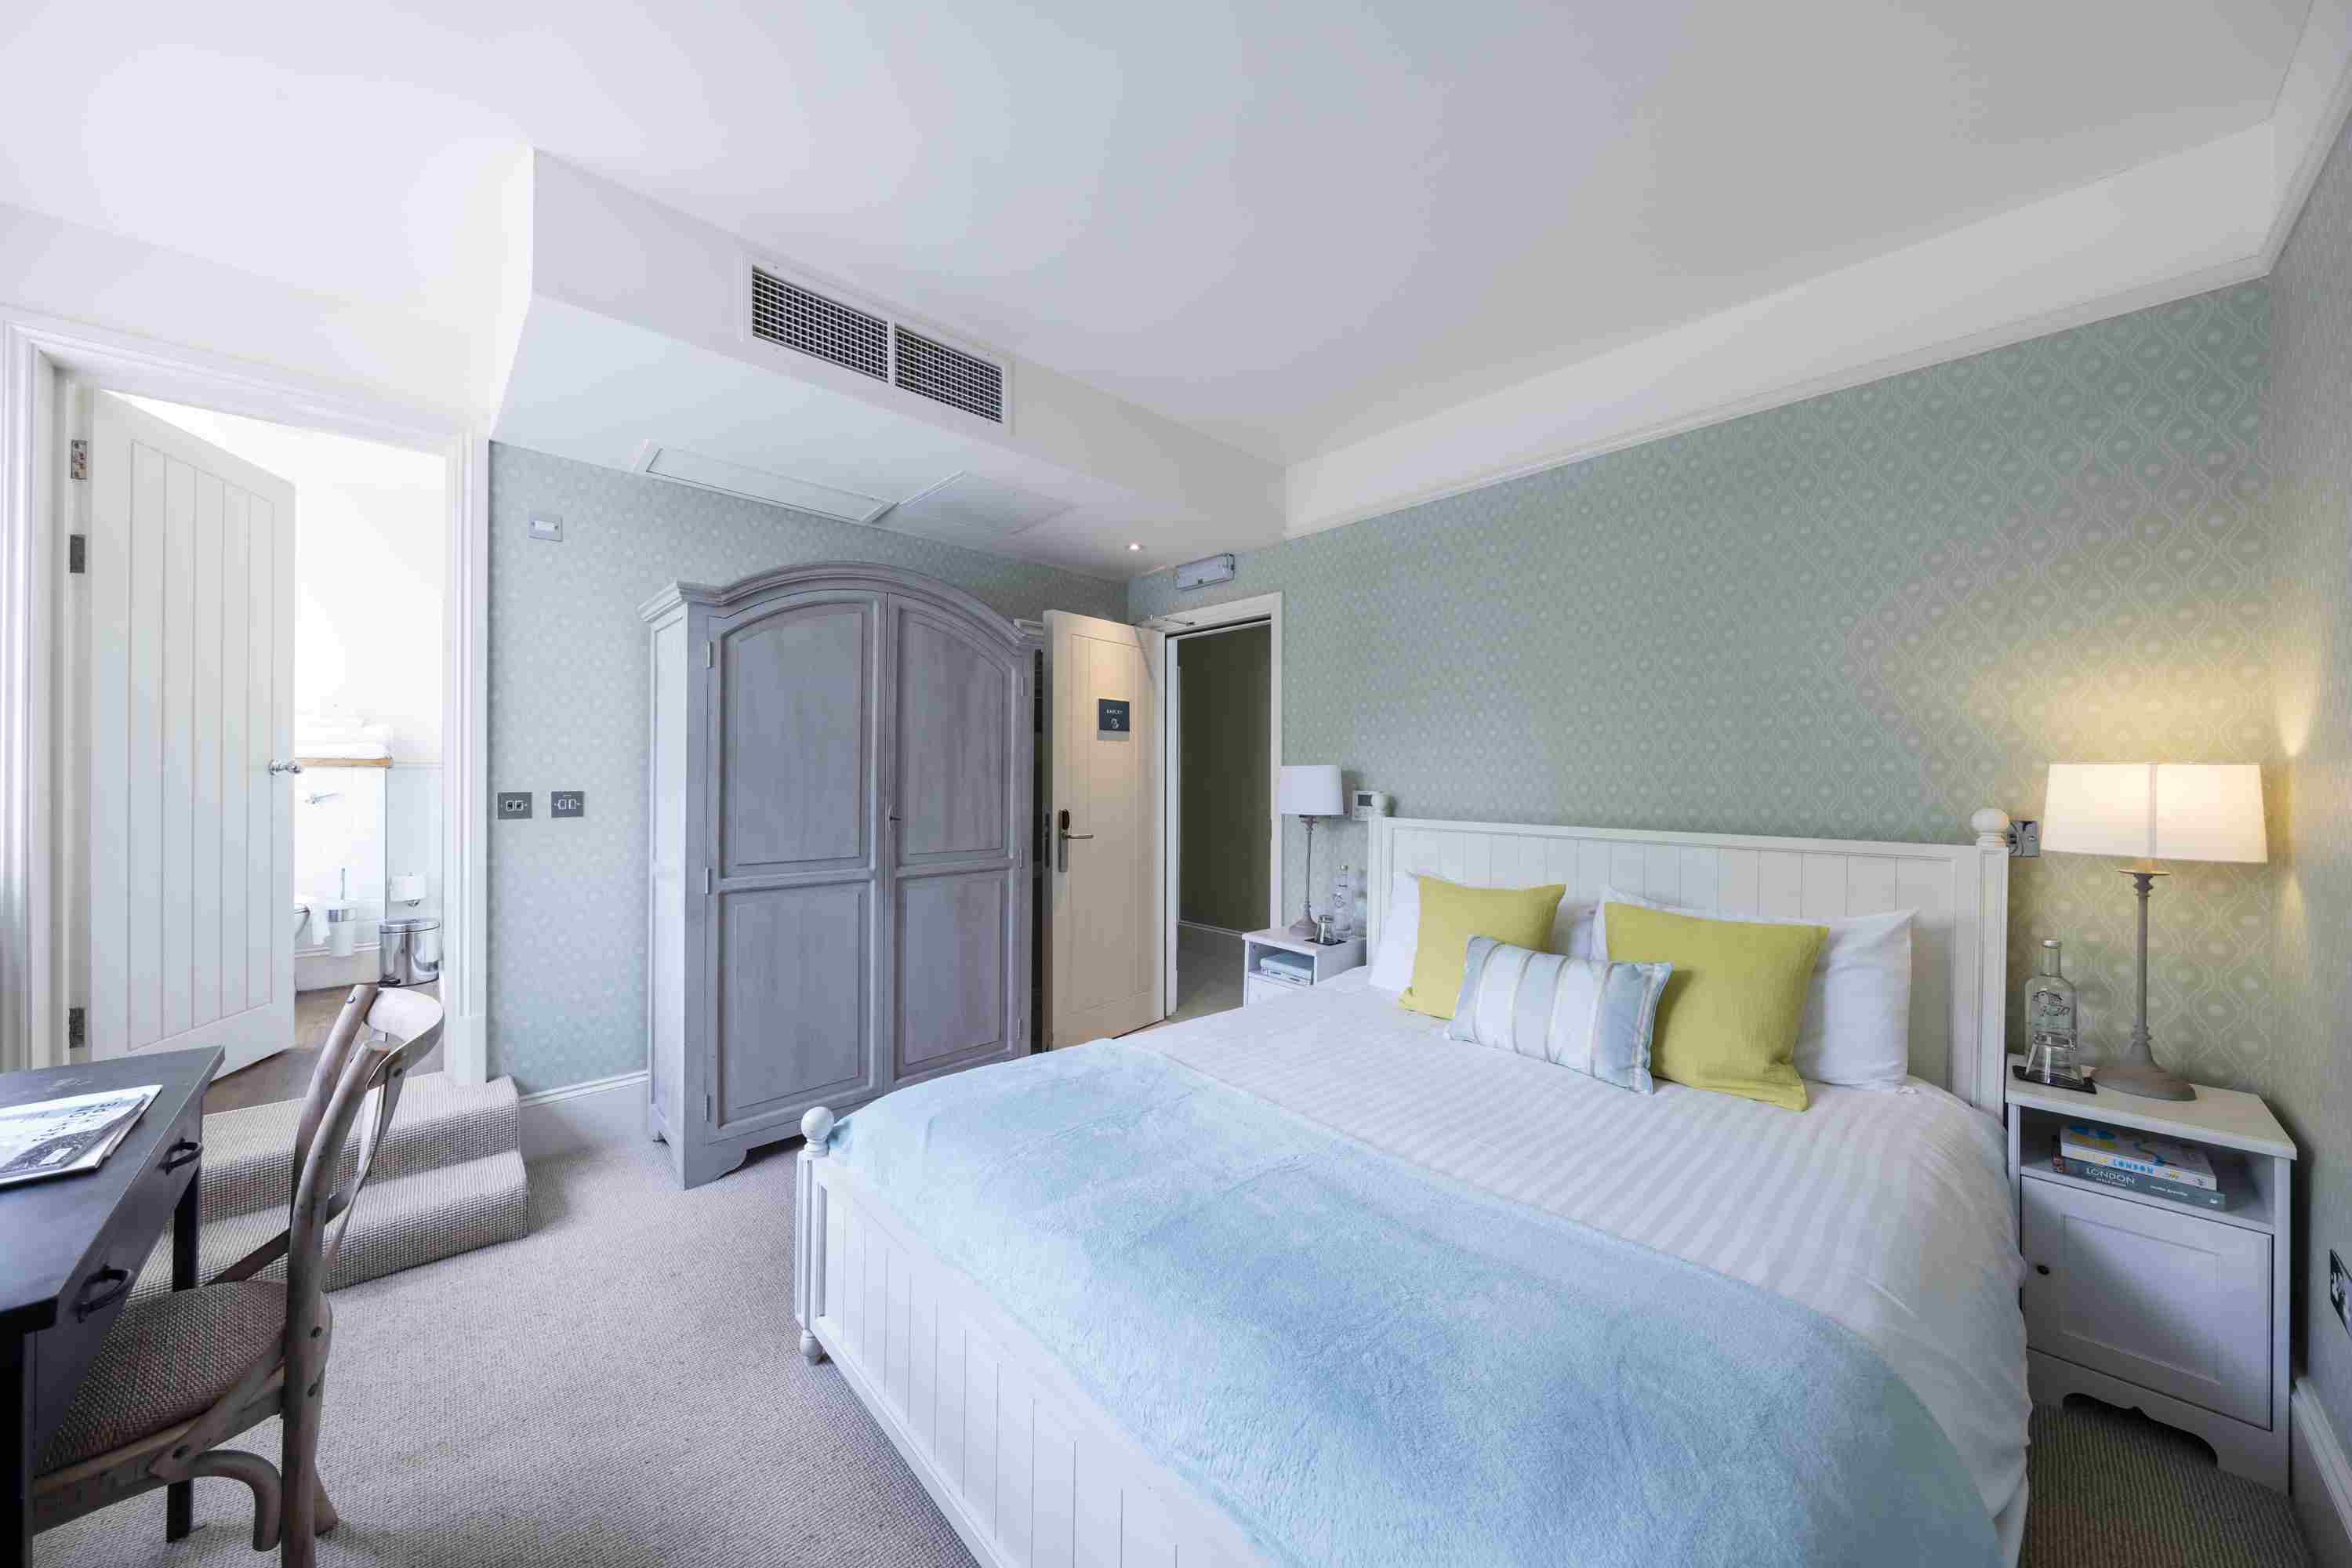 Guest room at the Malt House in Fulham